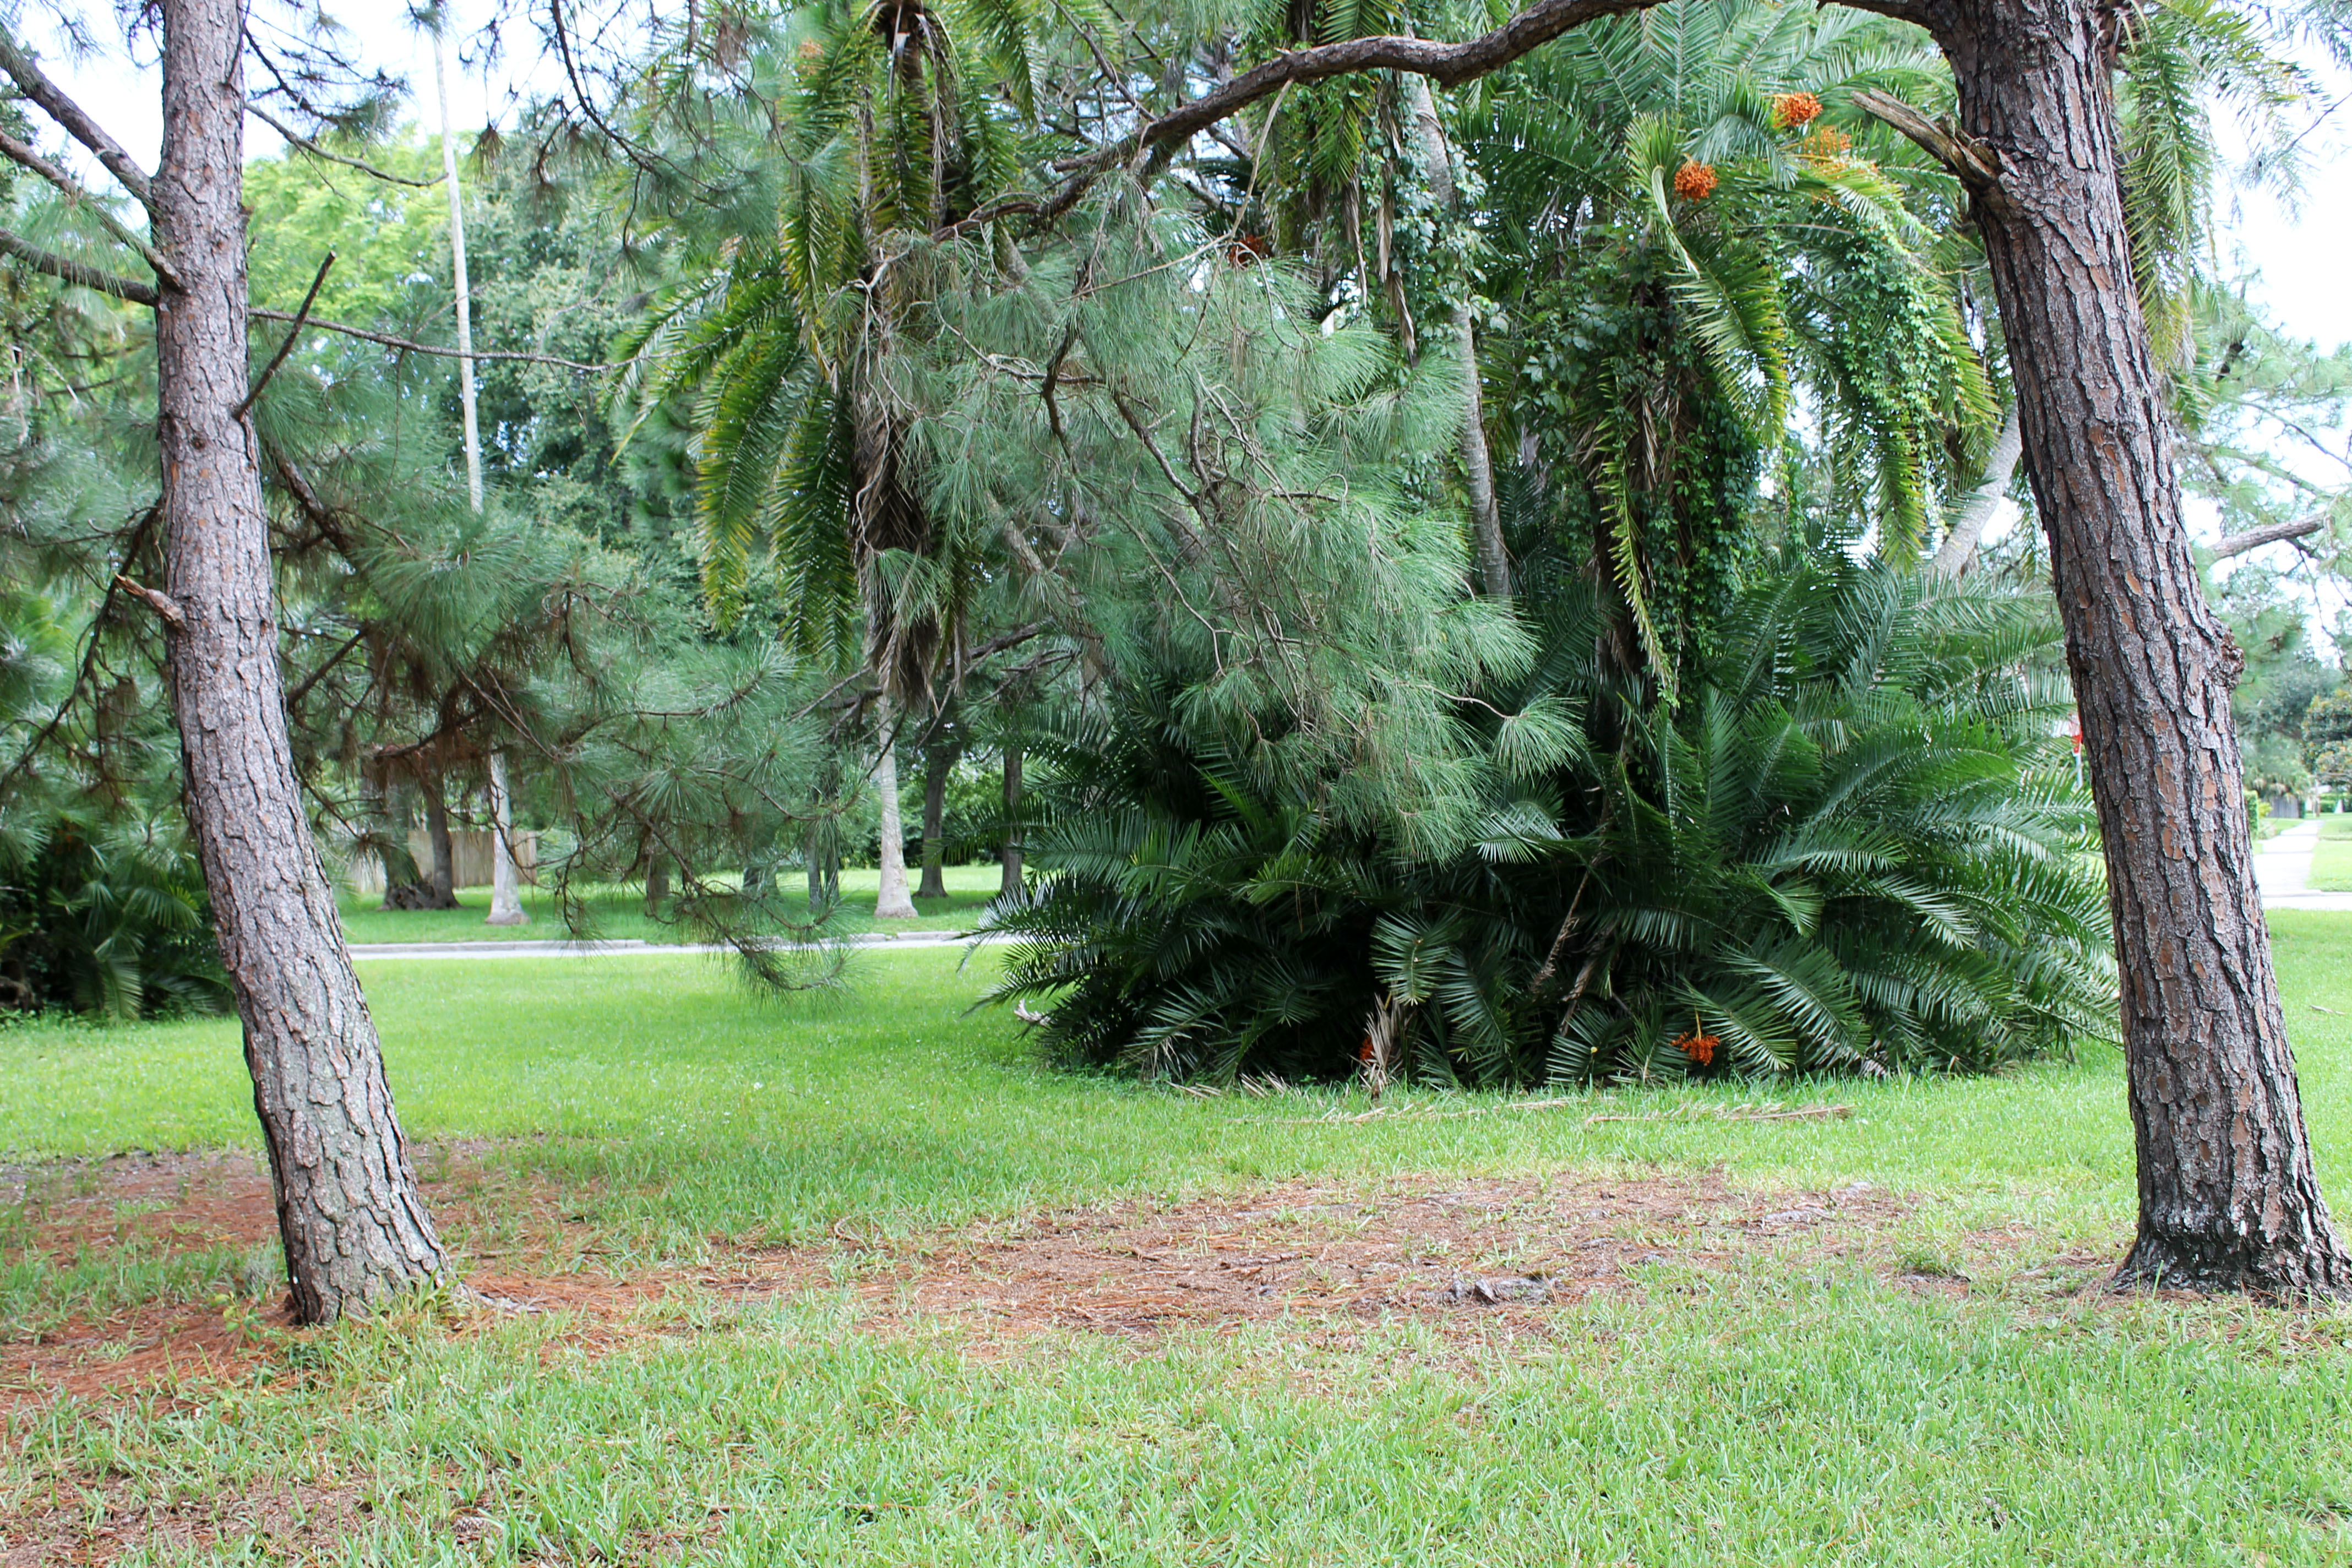 Two pine trees in Pinellas Park with a large shrub in the background